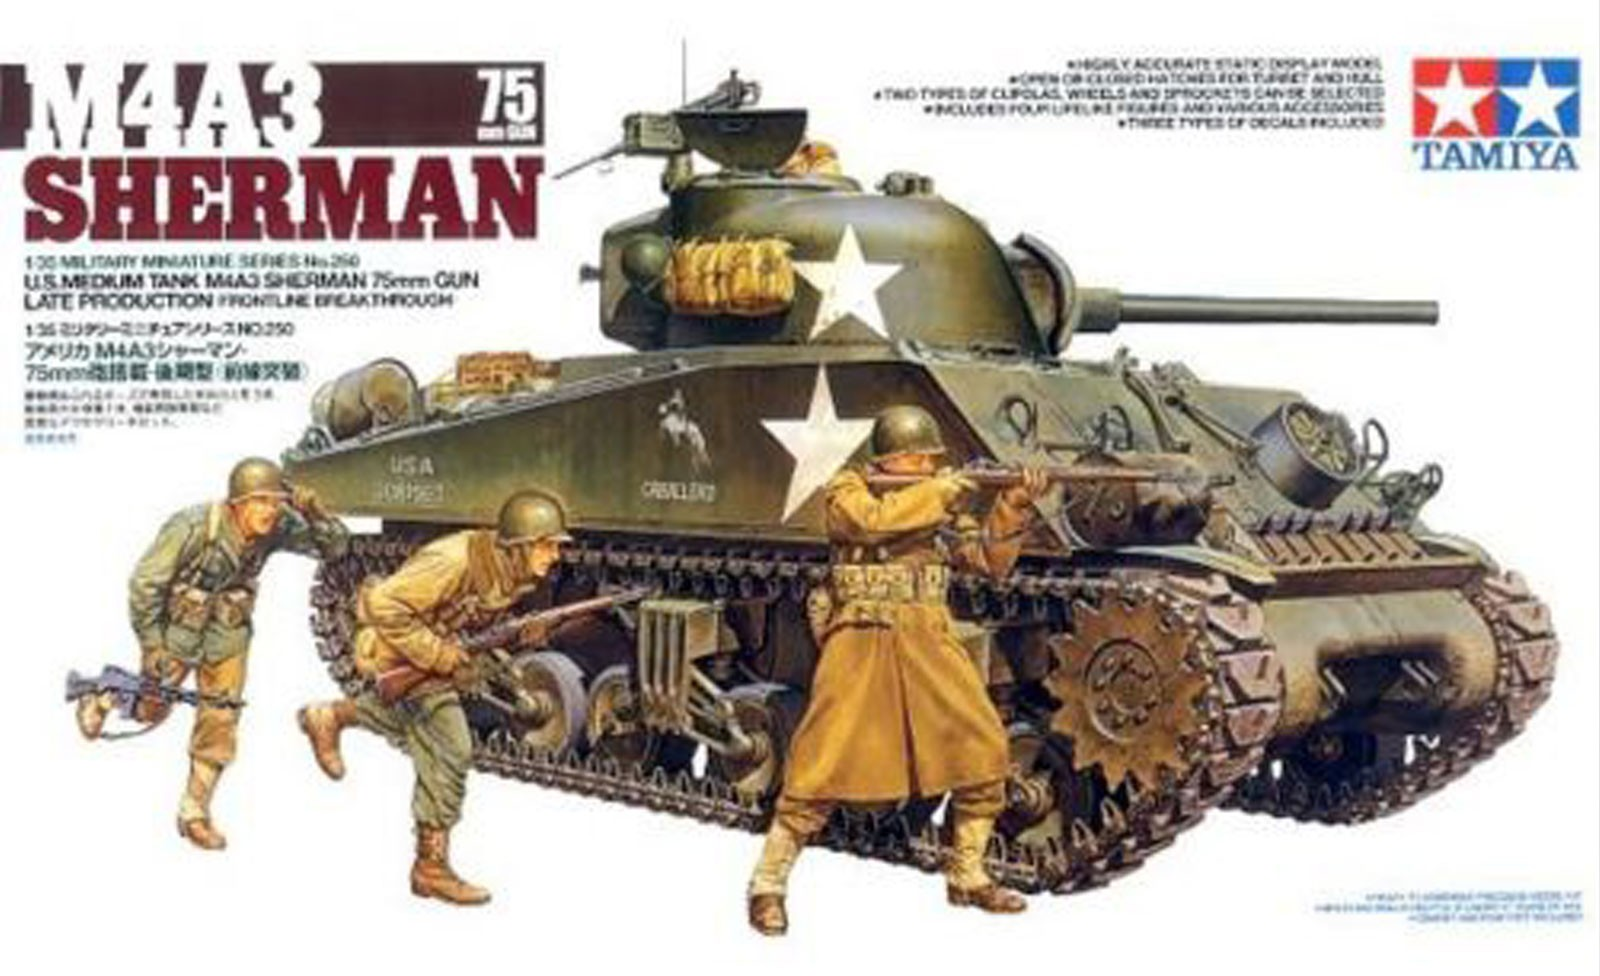 Allied M4A3 Sherman 75mm - Tamiya 35250 - plastic model kit - 1/35 scale